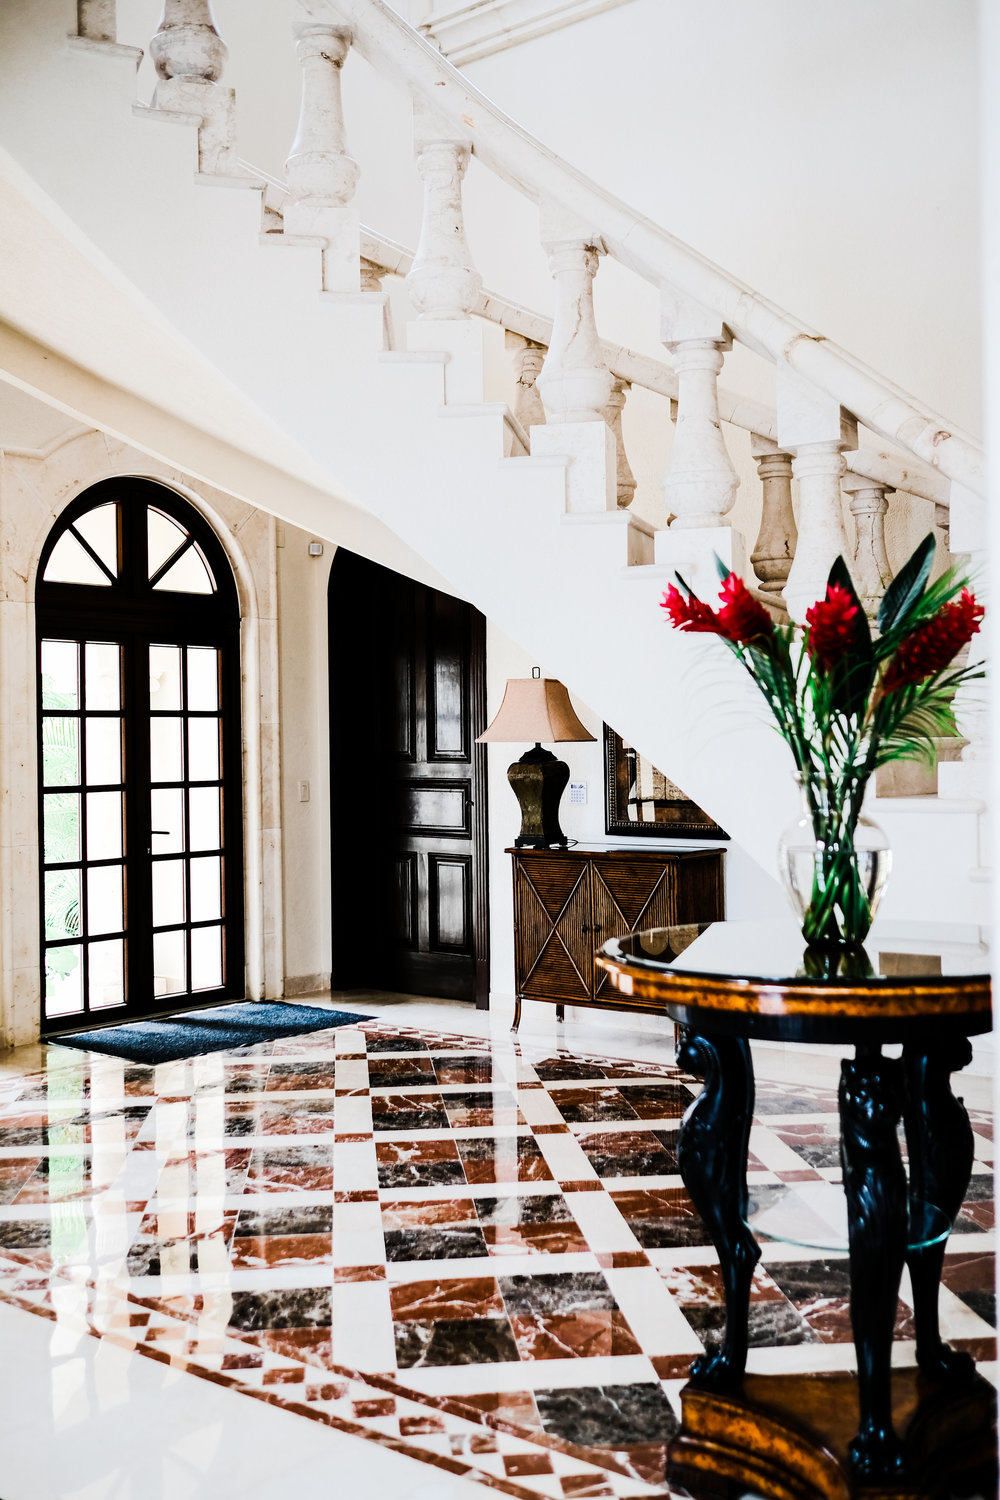 mexico_destination_wedding_villa_la_joya_cancun_05.jpg